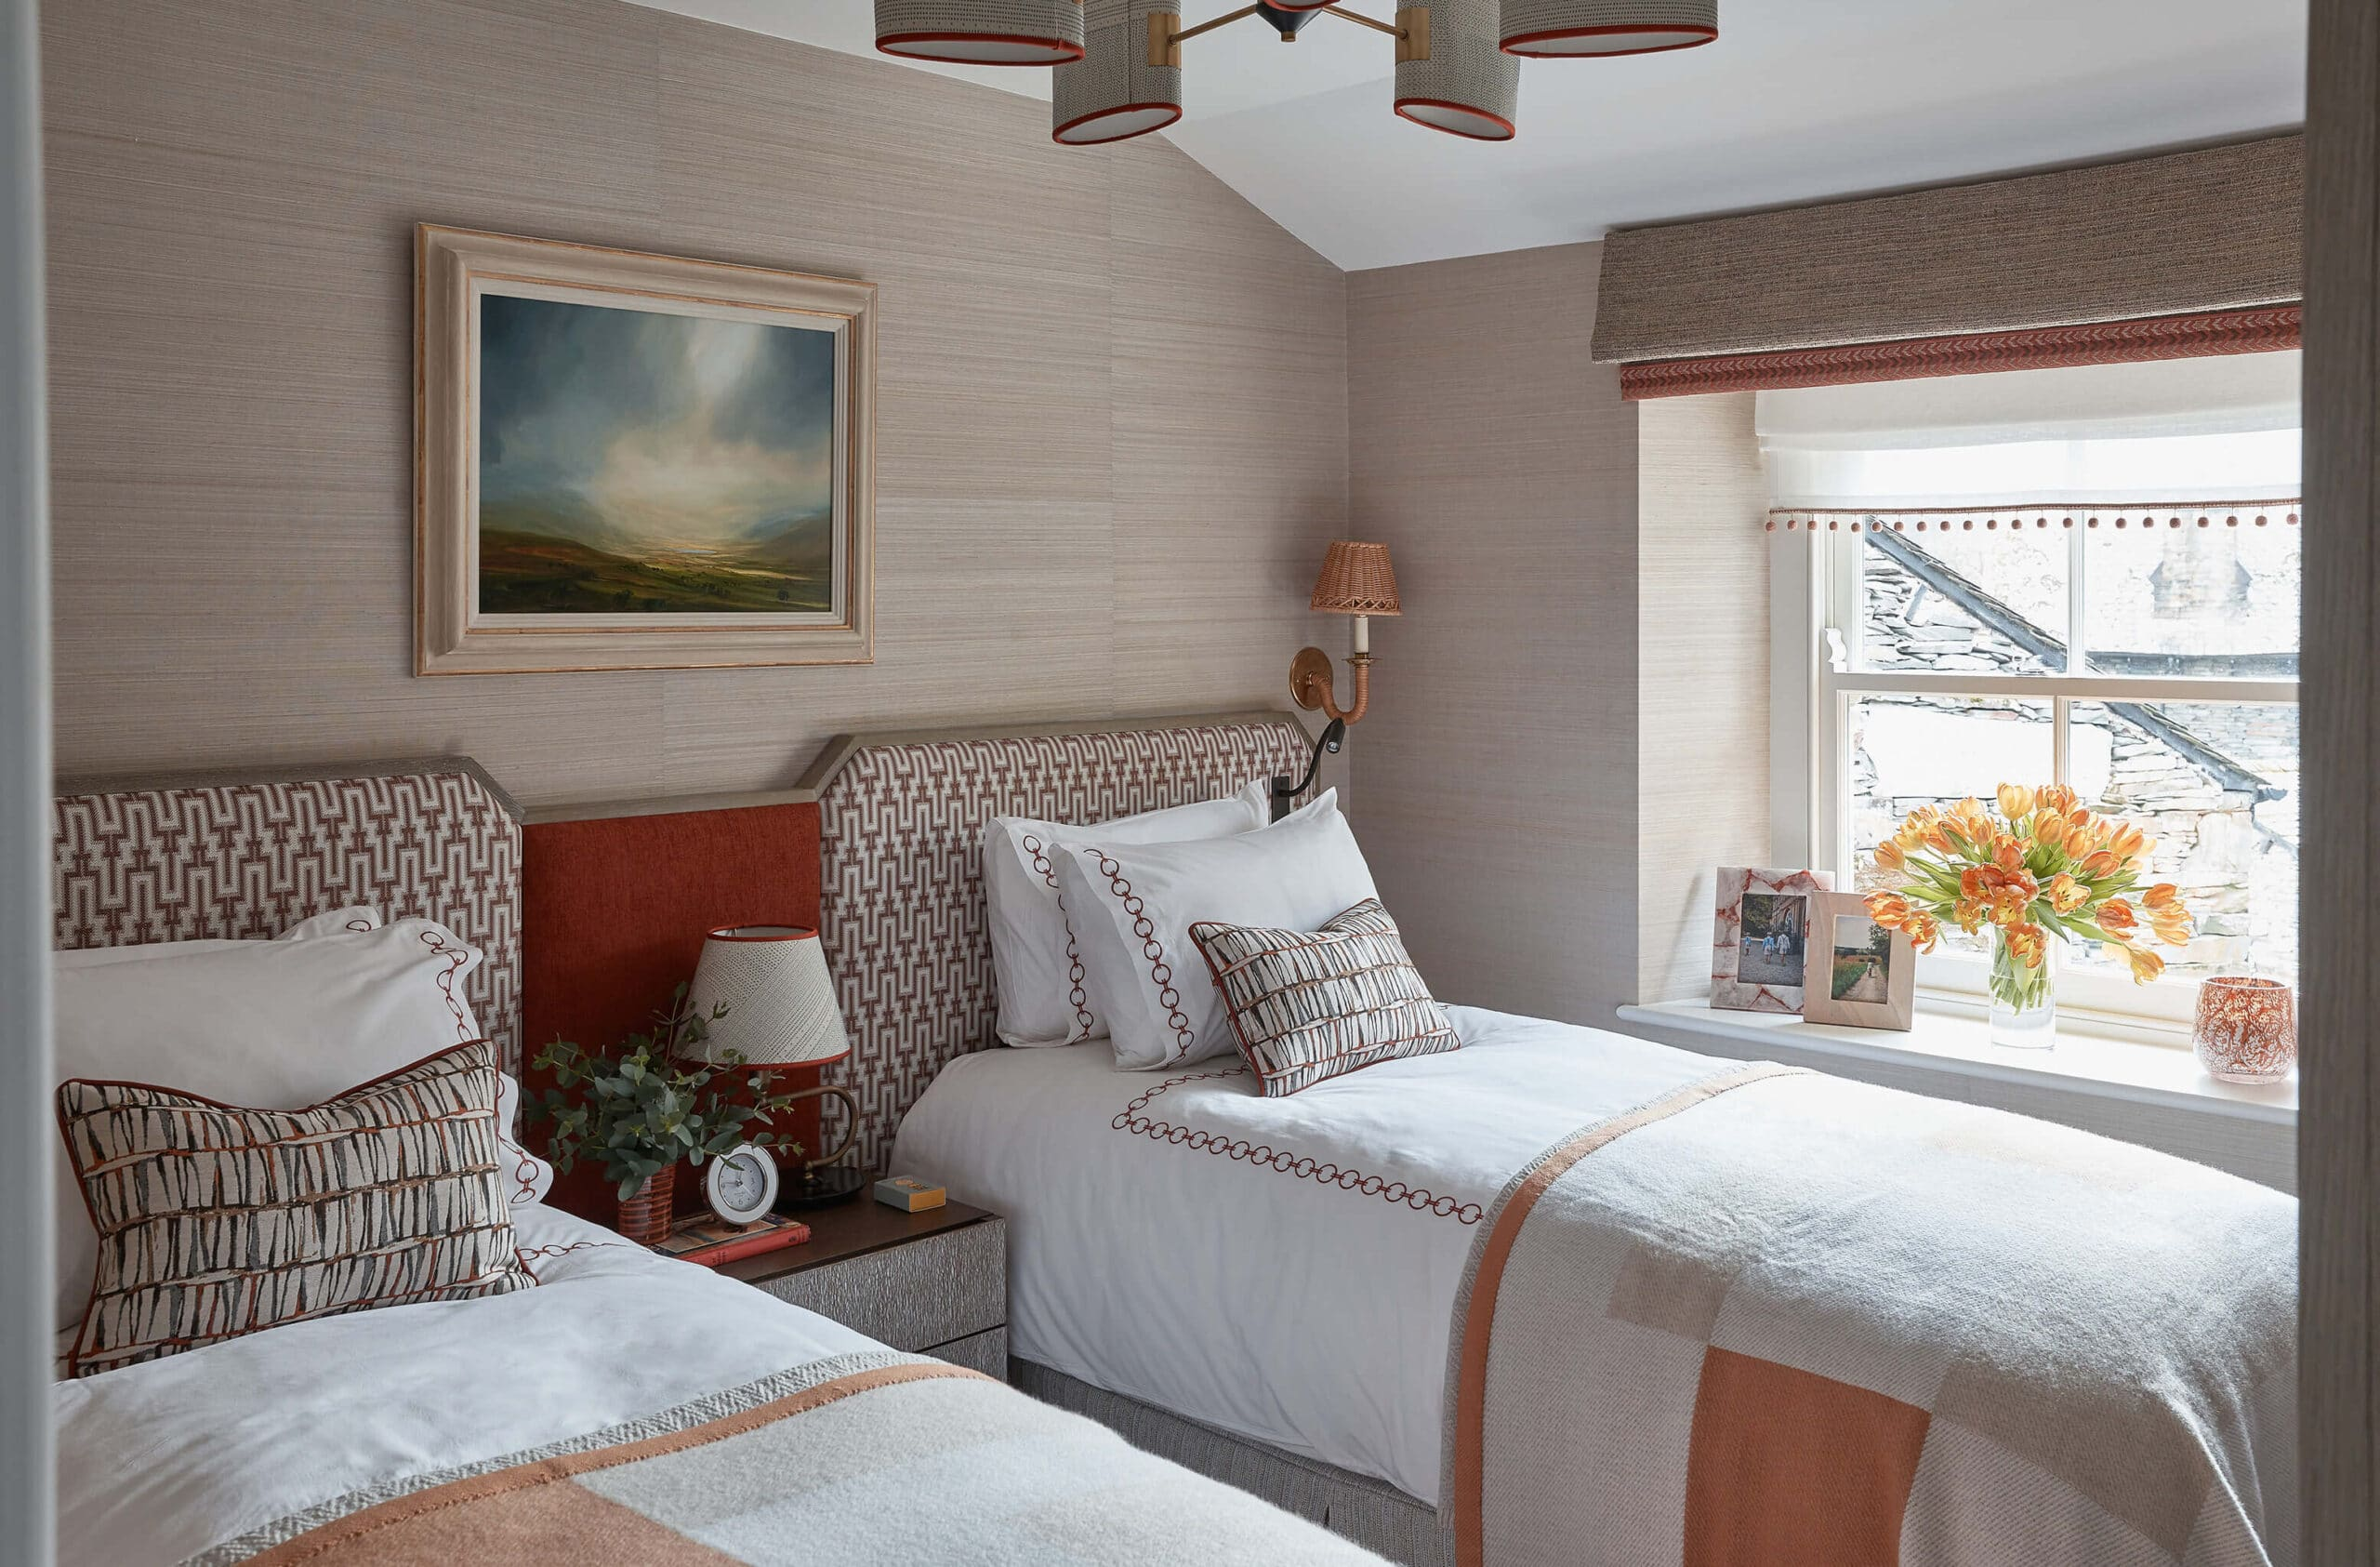 Bedroom of interior design project in Lake District